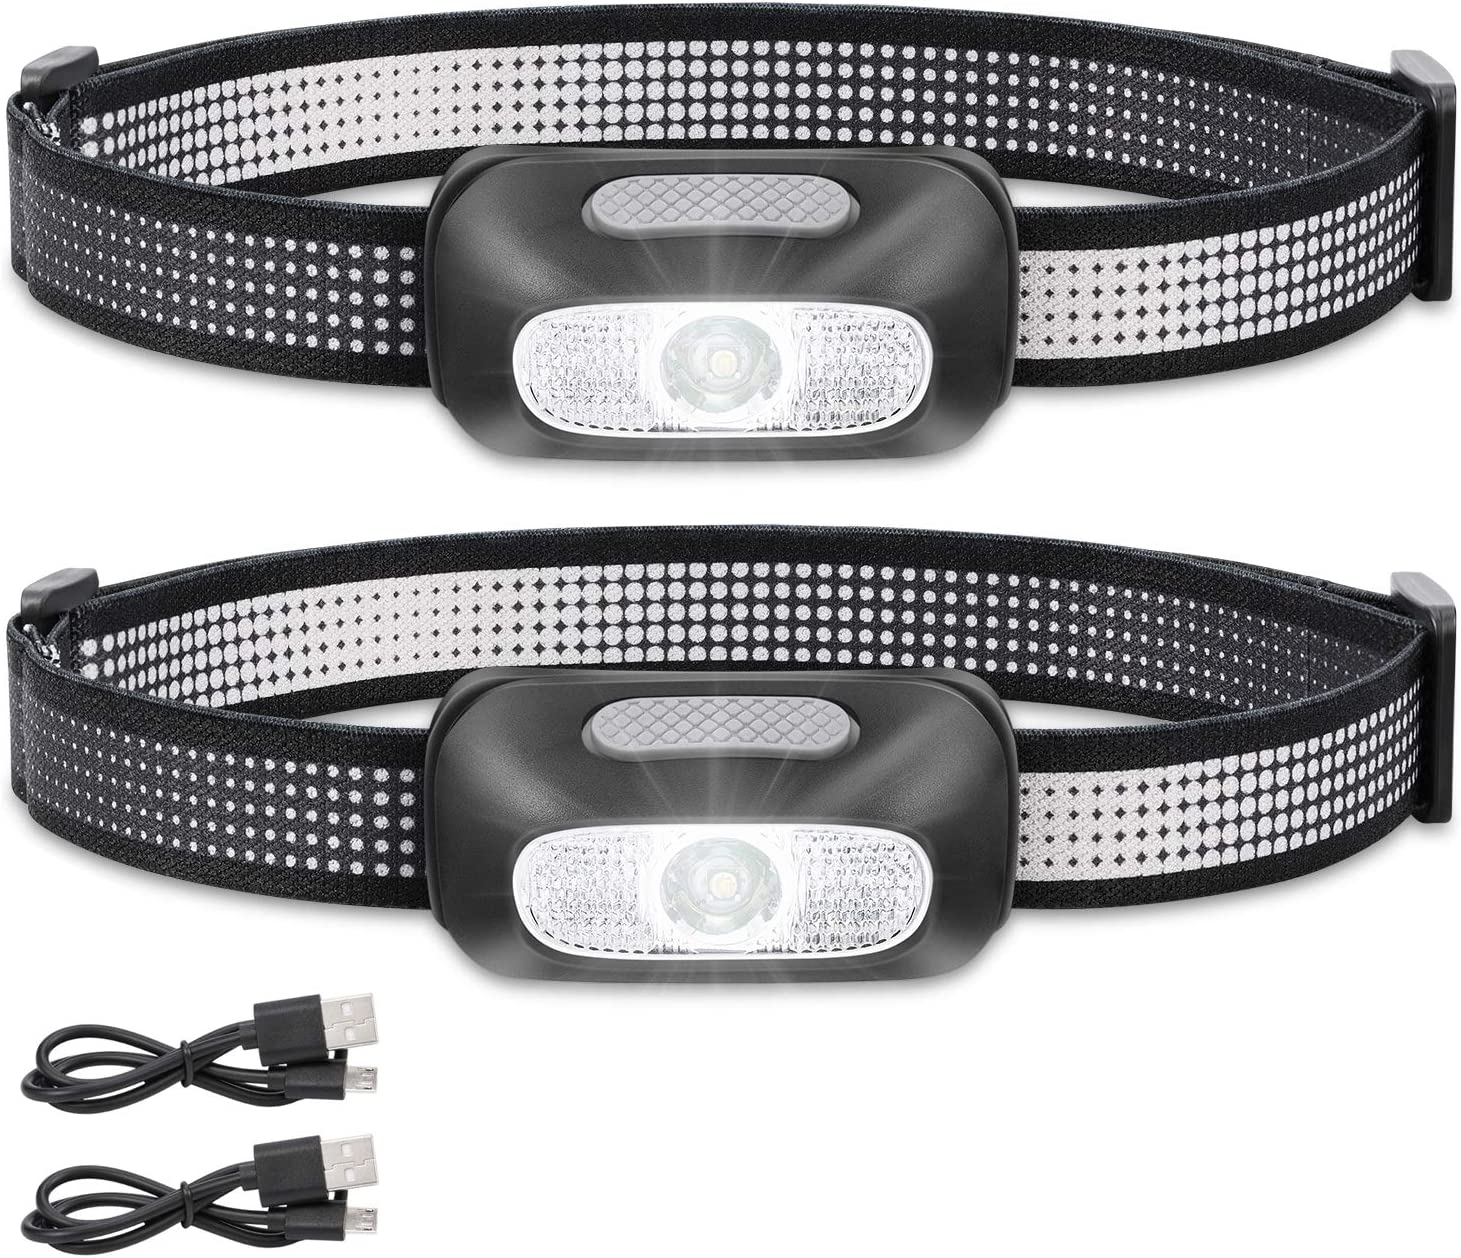 and Outdoor Headlamps DAINING B2-2 LED Headlamp Flashlight S500 Running Camping Best Head Lamp with Red Safety Light for Adults and Kids,Black Pack of 1